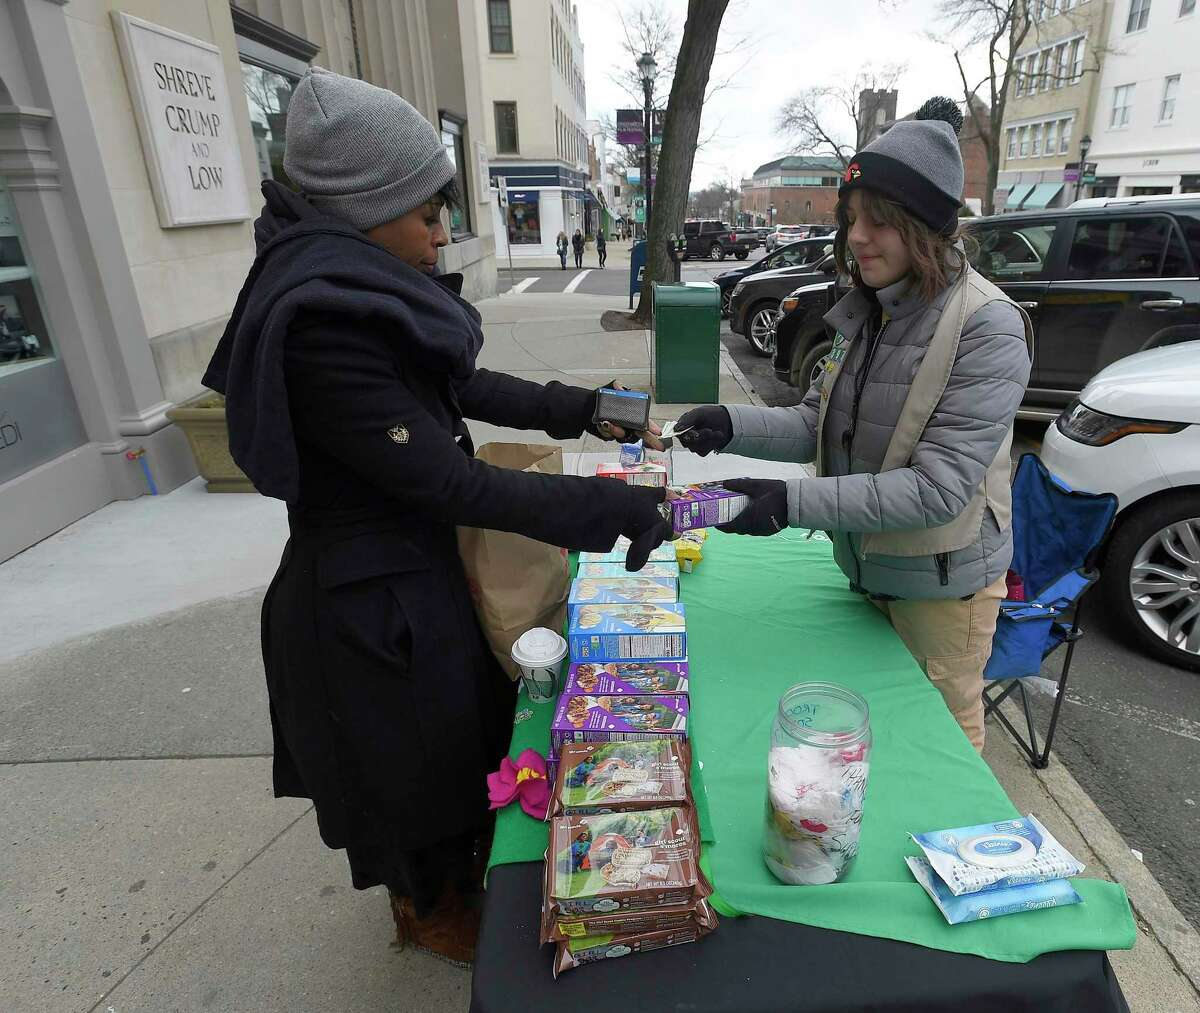 Stacy Westcarr, of Bridgeport, who works in the Greenwich area, stops to purchase some Girl Scout cookies from Sofia Adams and Tiffany Abrahams, both Cadet scouts from Troop 50397. The girls were selling the cookies along Greenwich Avenue in Greenwich on Saturday. Greenwich Girls Scouts are kicking off cookie booth sales this week. Troops will be selling their iconic cookies at various locations around Greenwich for the month of March. Troops will also be collecting donations for Cookies for Heroes, which sends cookies to servicemen and women in the military as well as veterans.